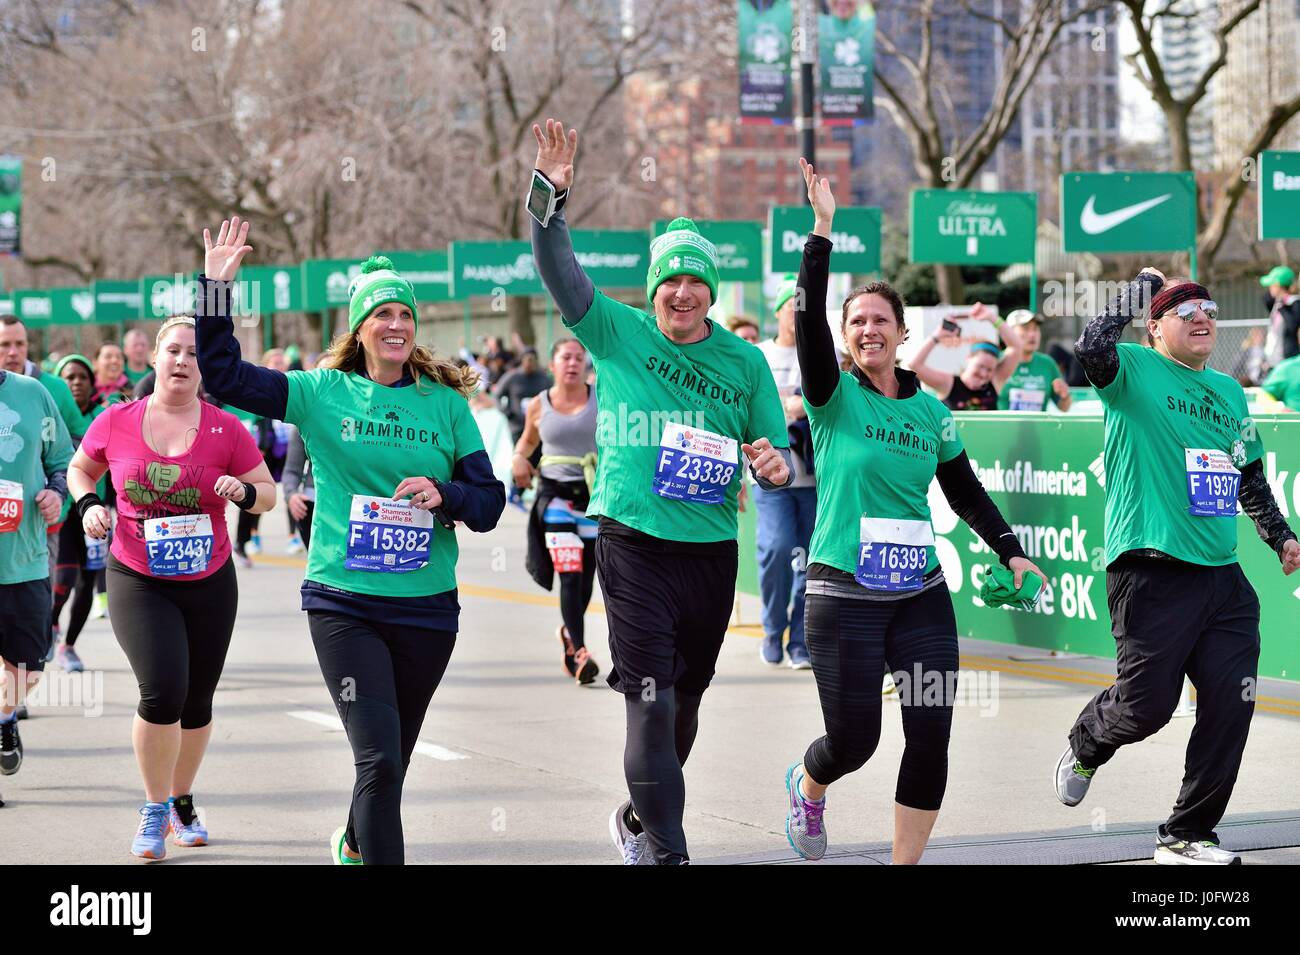 Happy cluster of runners crossing the finish line at the 2017 Shamrock Shuffle race in Chicago, Illinois, USA. - Stock Image